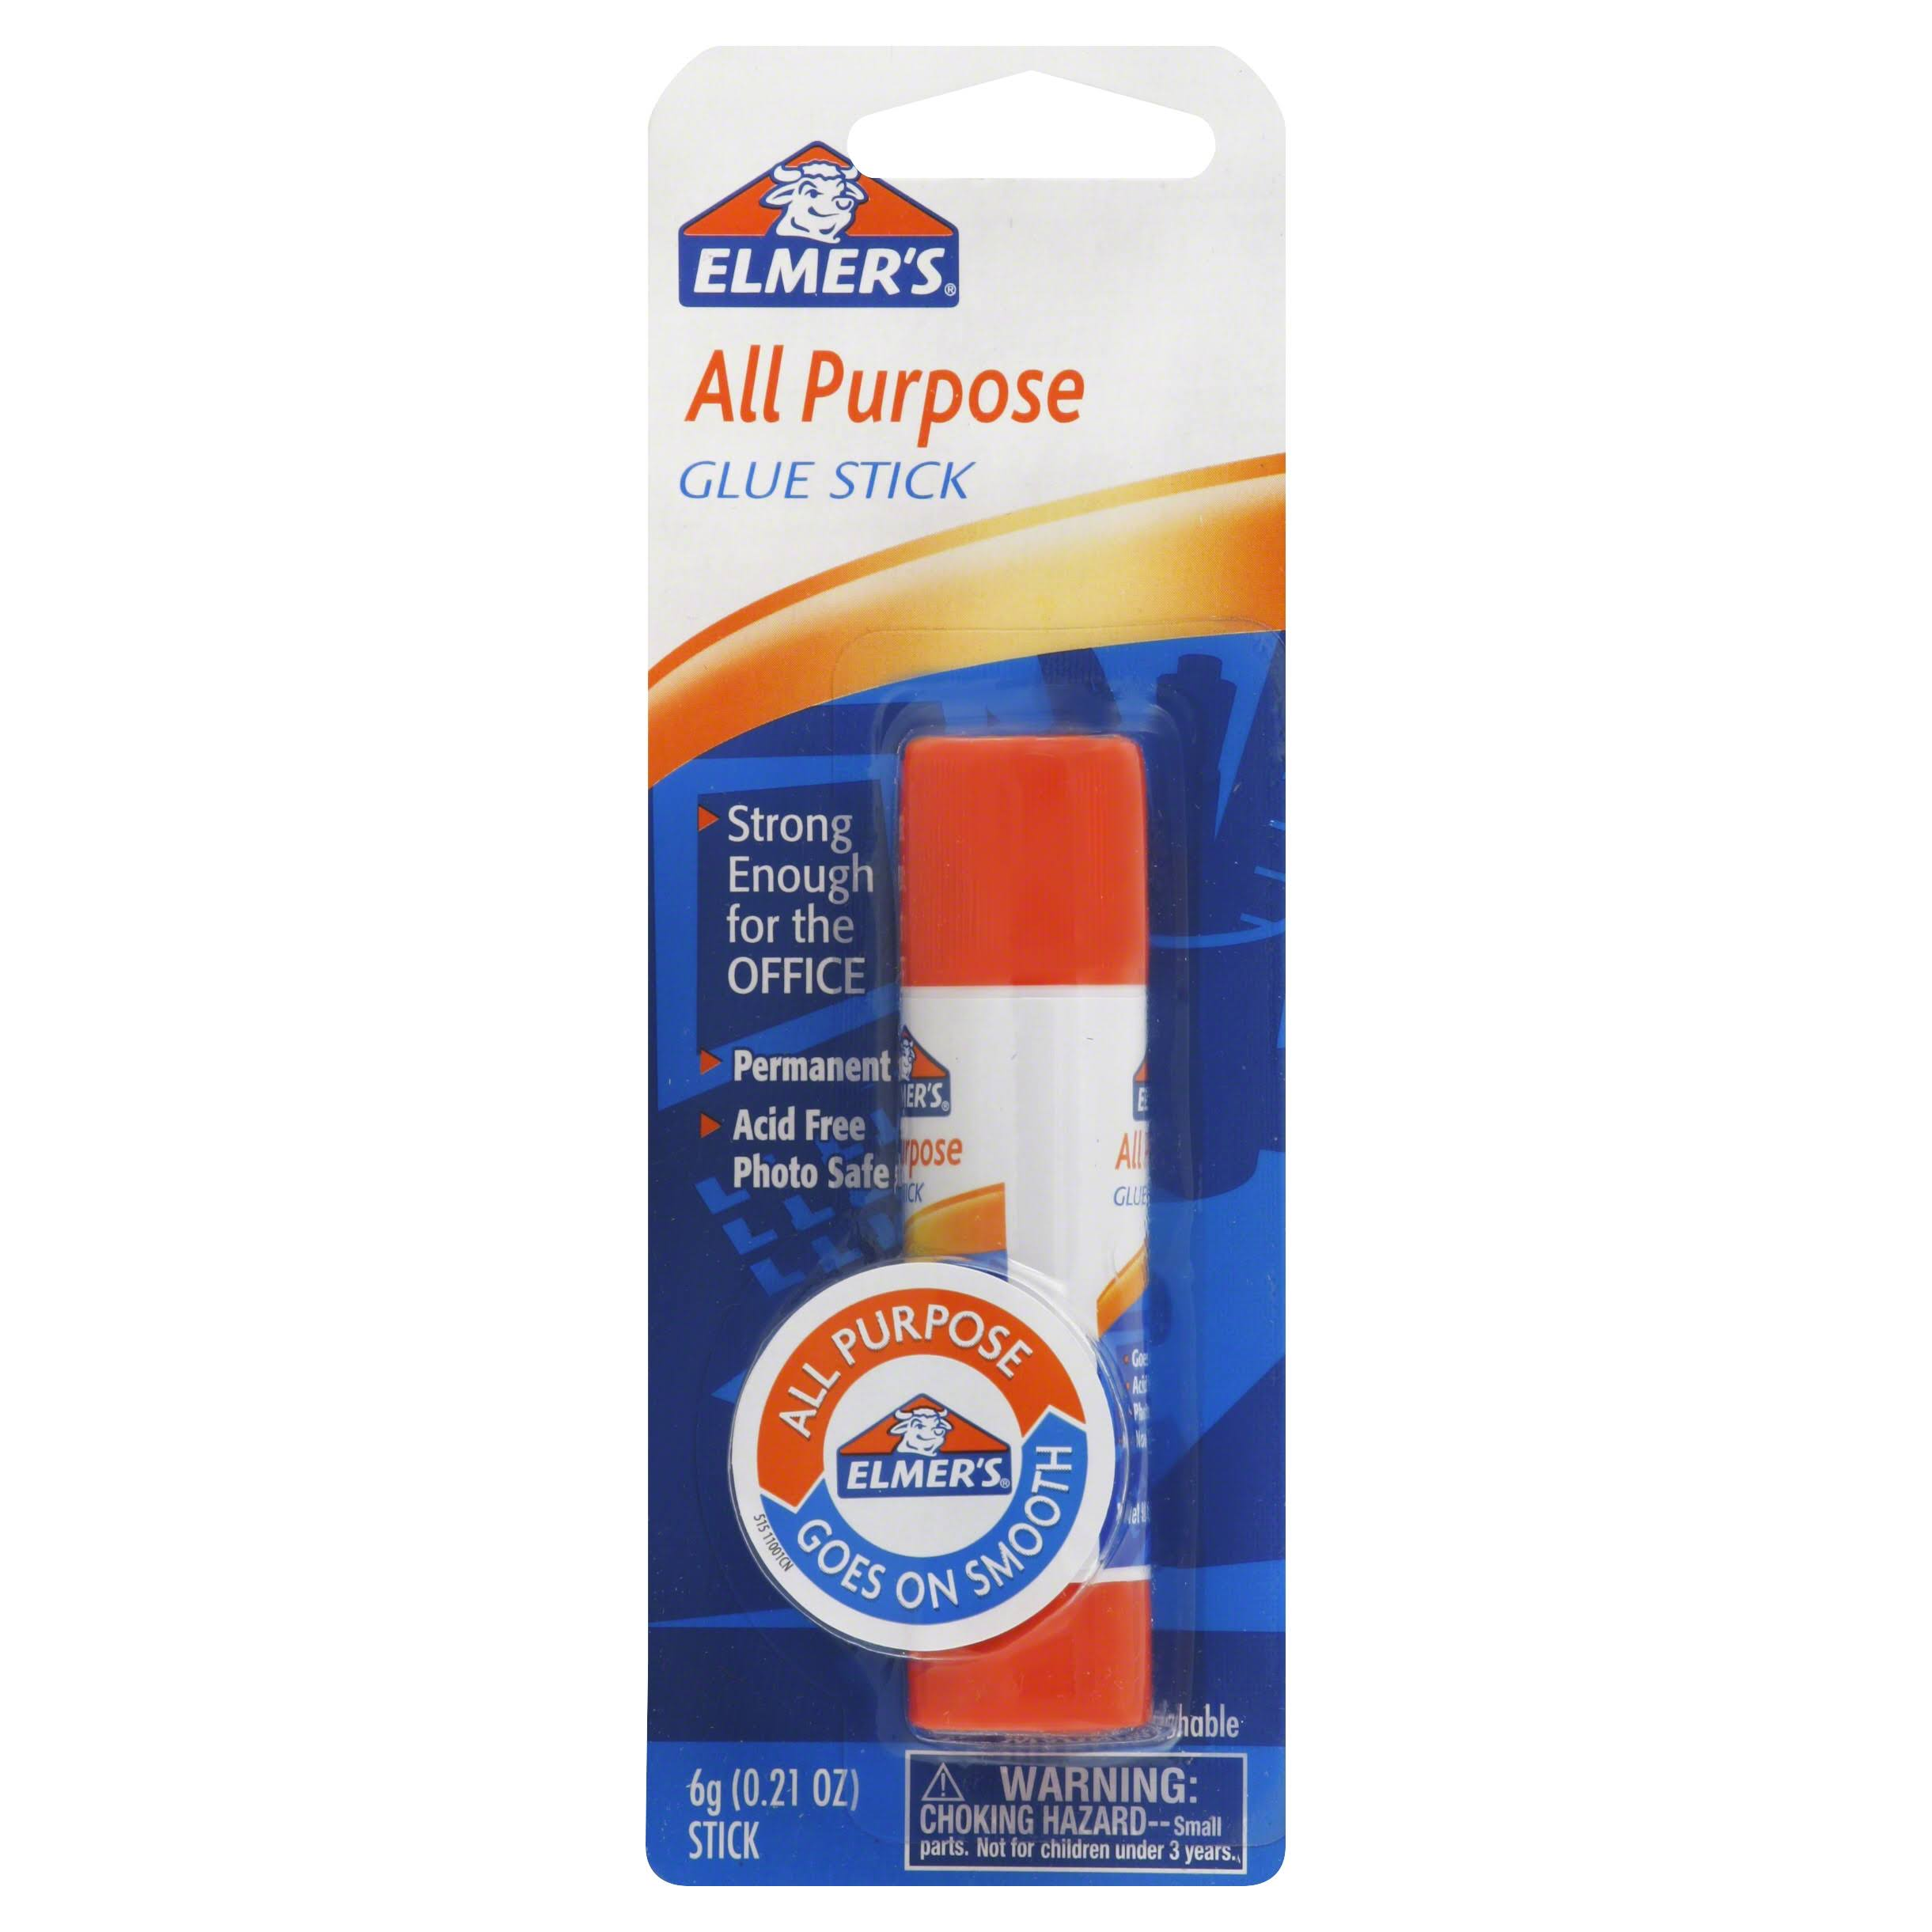 Elmer's All-Purpose Glue Stick - 6g